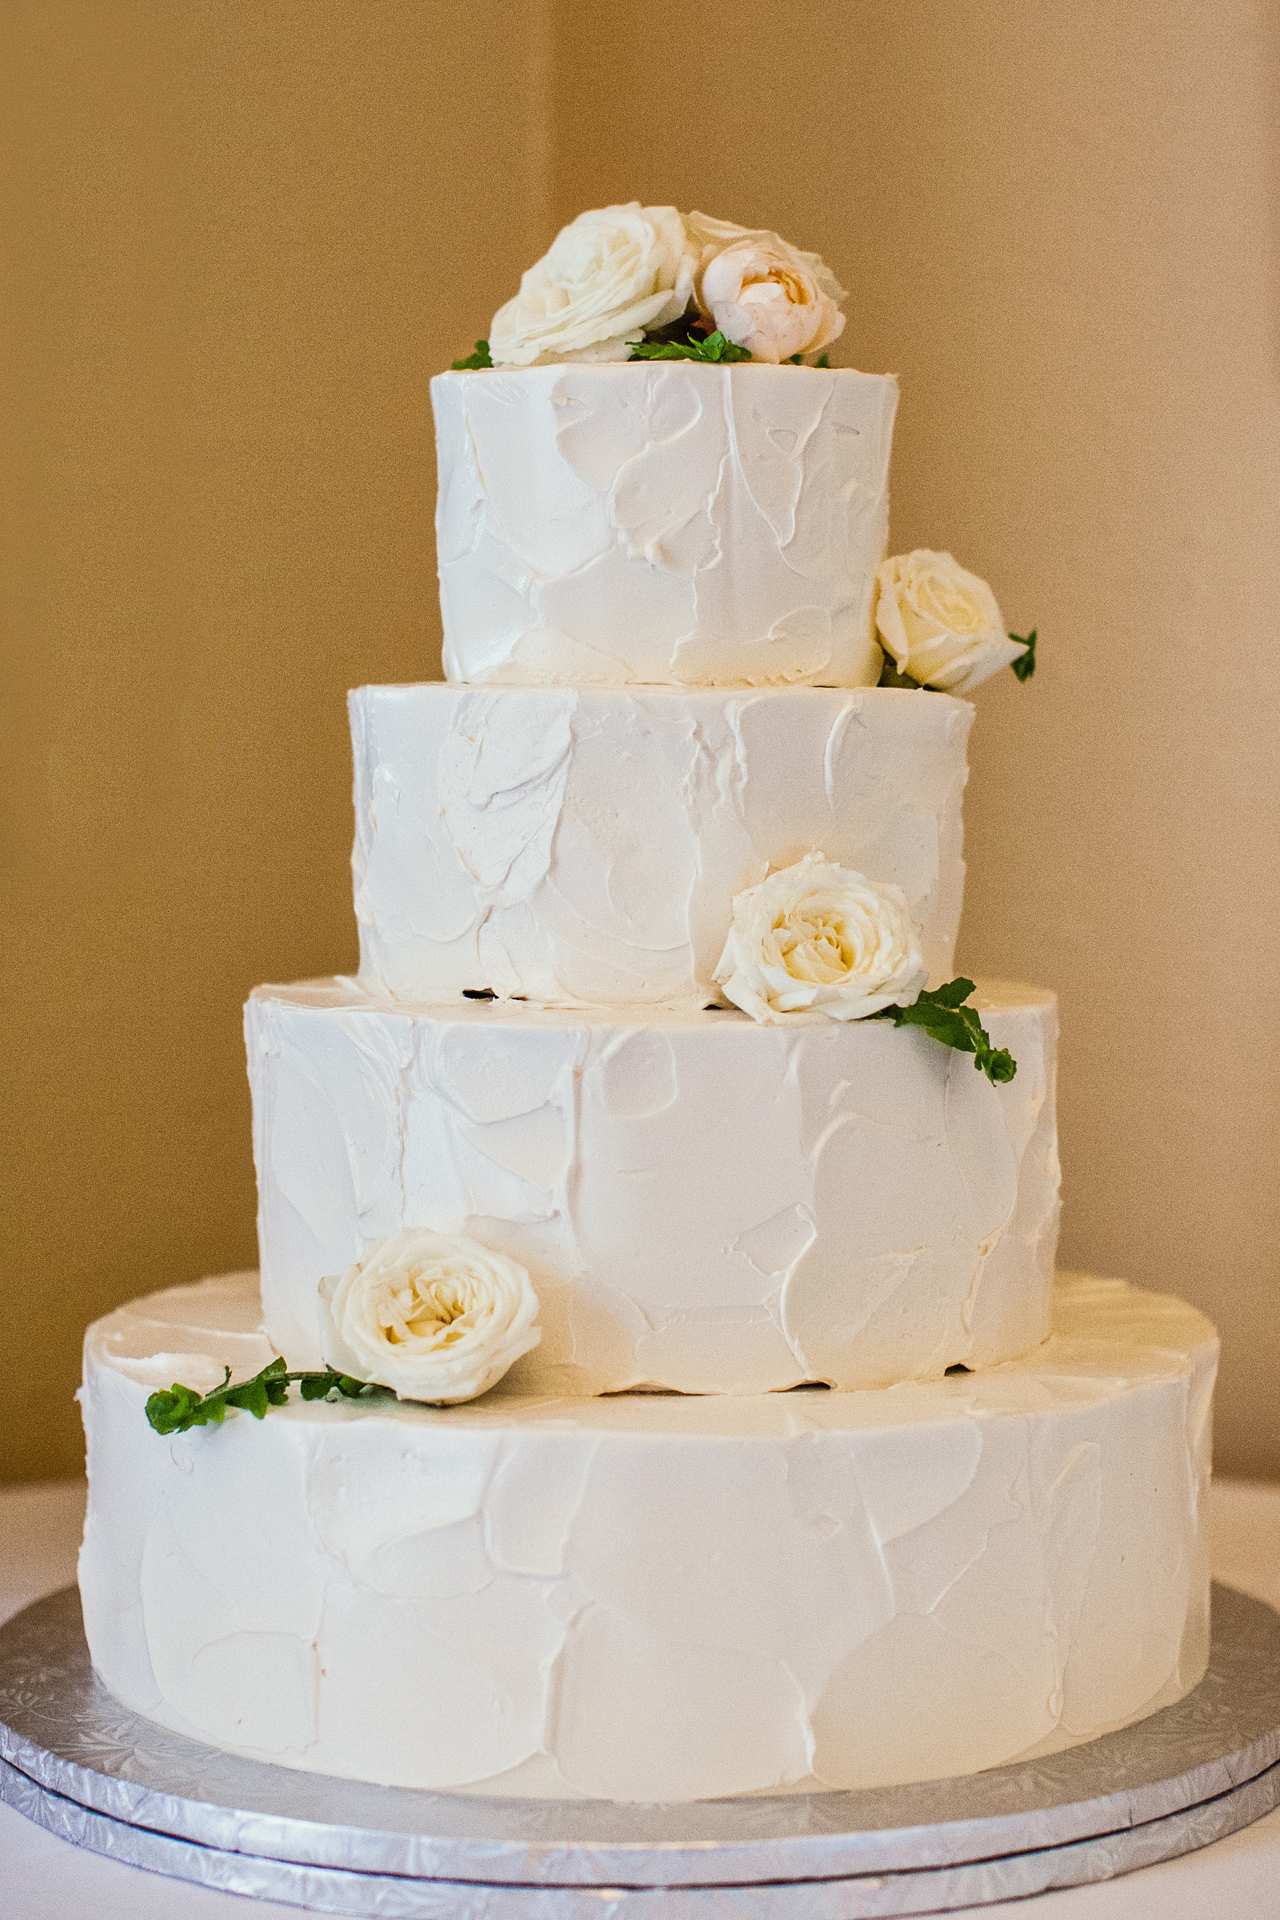 The Buttery designed this simple cake to end the charming